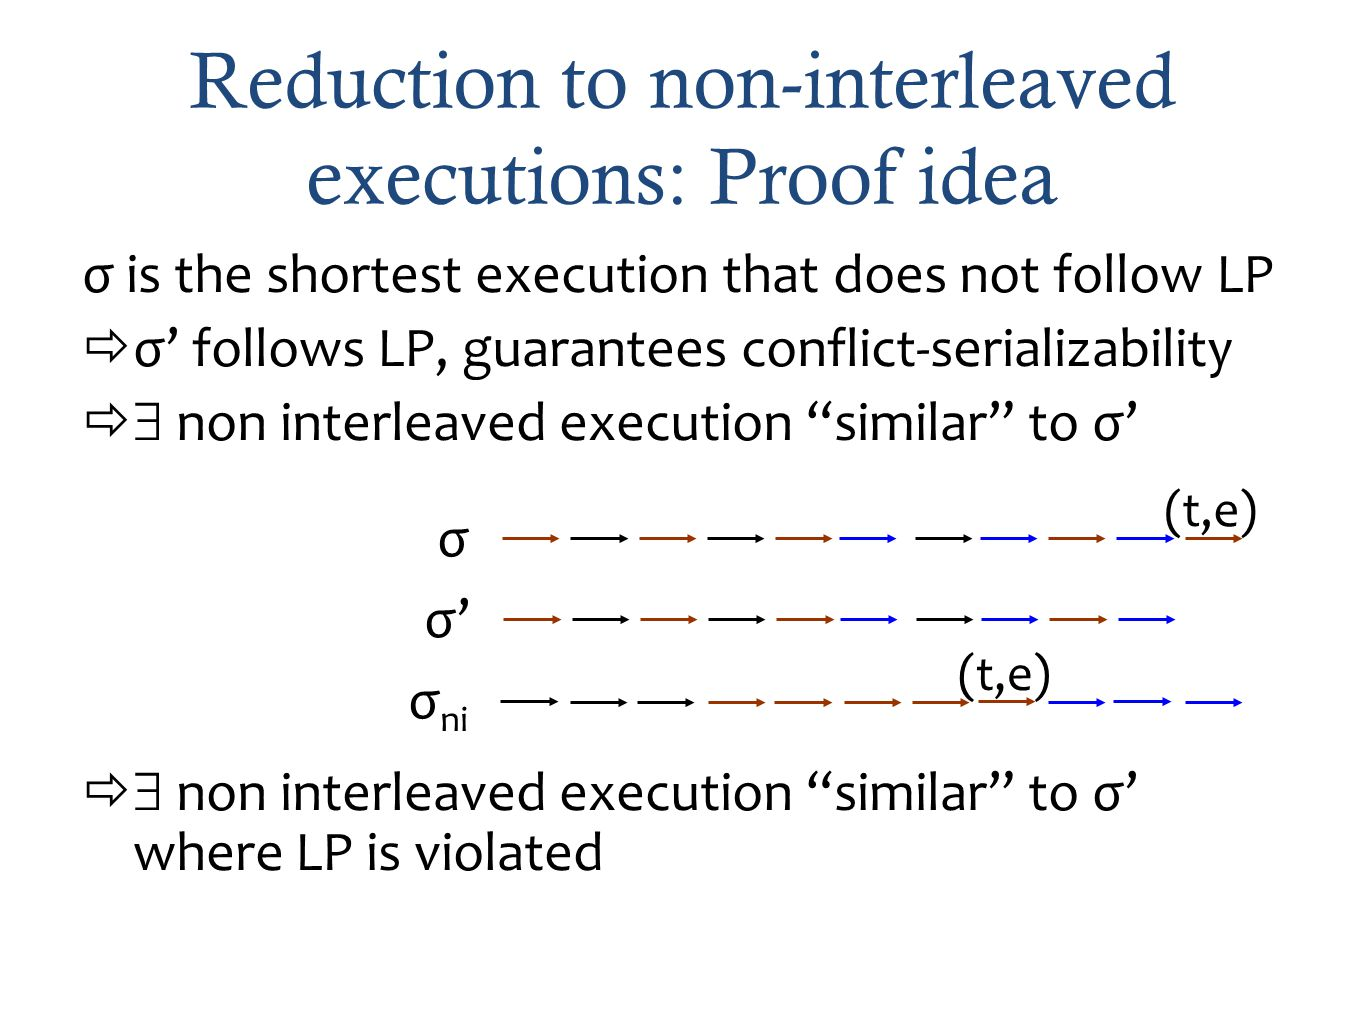 Reduction to non-interleaved executions: Proof idea σ is the shortest execution that does not follow LP σ follows LP, guarantees conflict-serializability non interleaved execution similar to σ non interleaved execution similar to σ where LP is violated σ (t,e) σ σ ni (t,e)